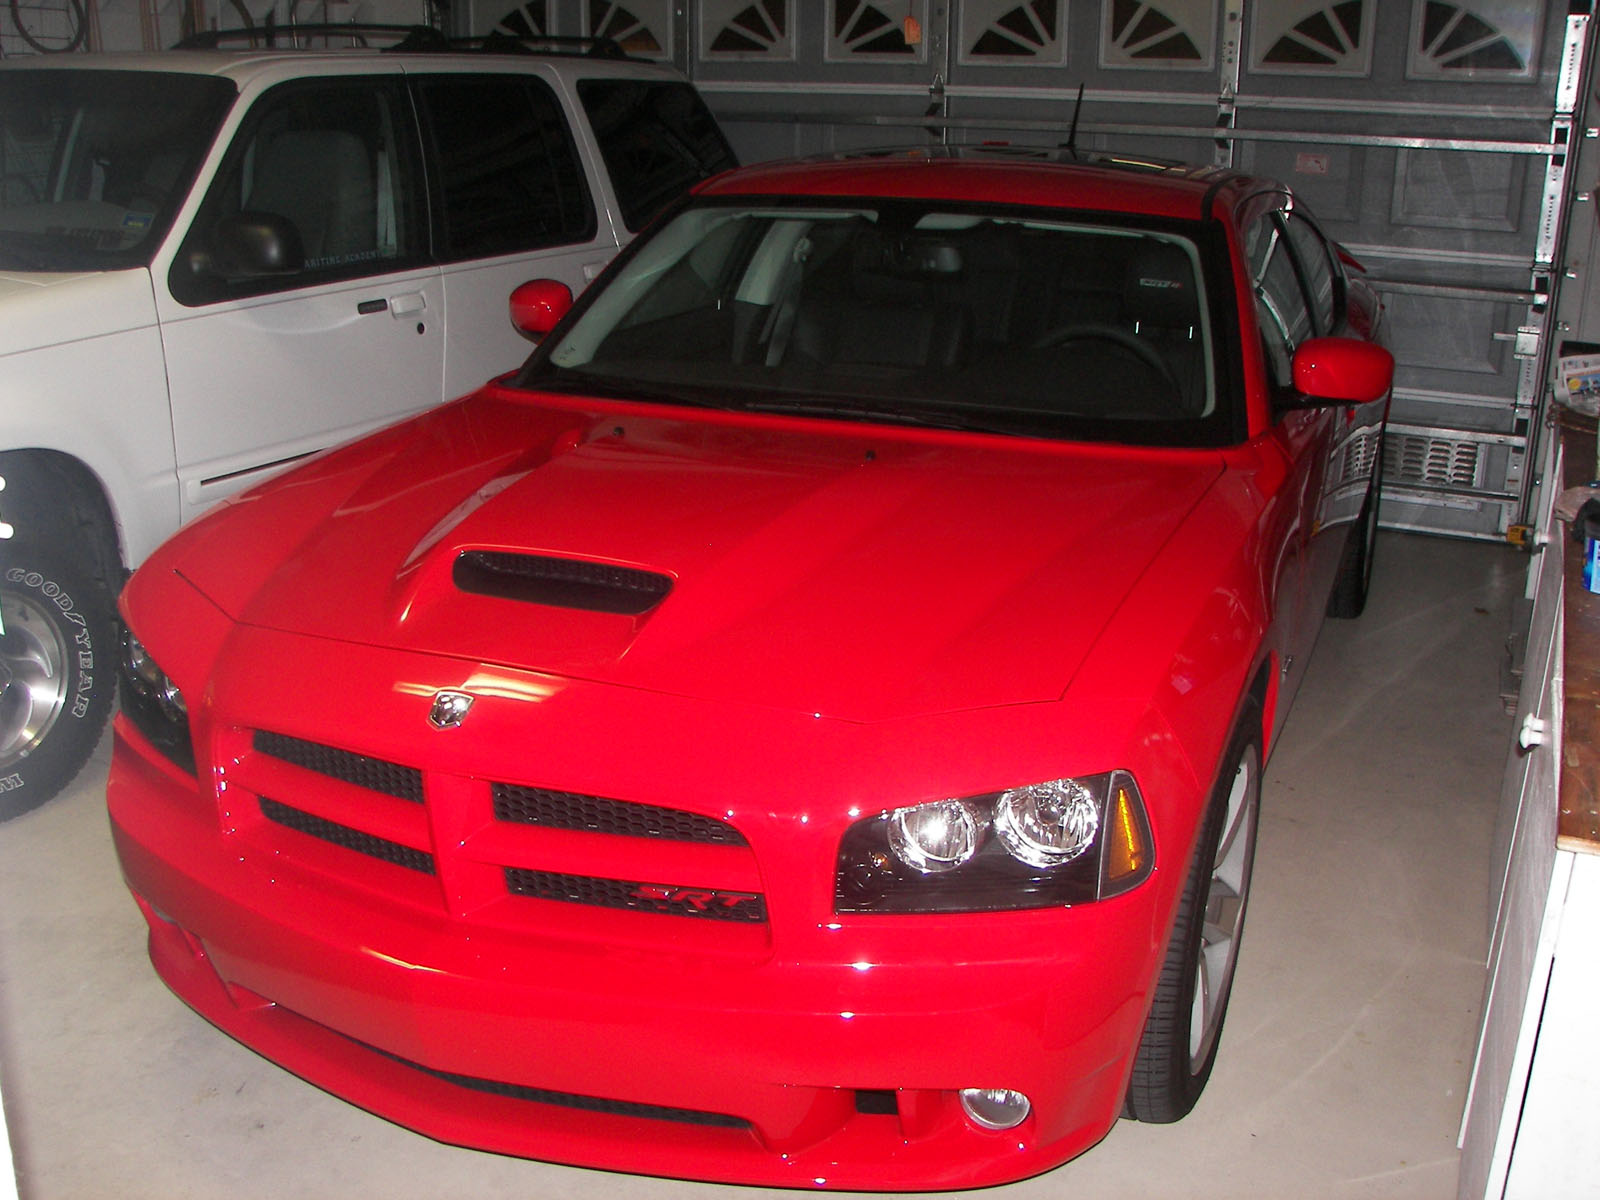 2008 dodge charger srt8 pictures mods upgrades wallpaper. Black Bedroom Furniture Sets. Home Design Ideas